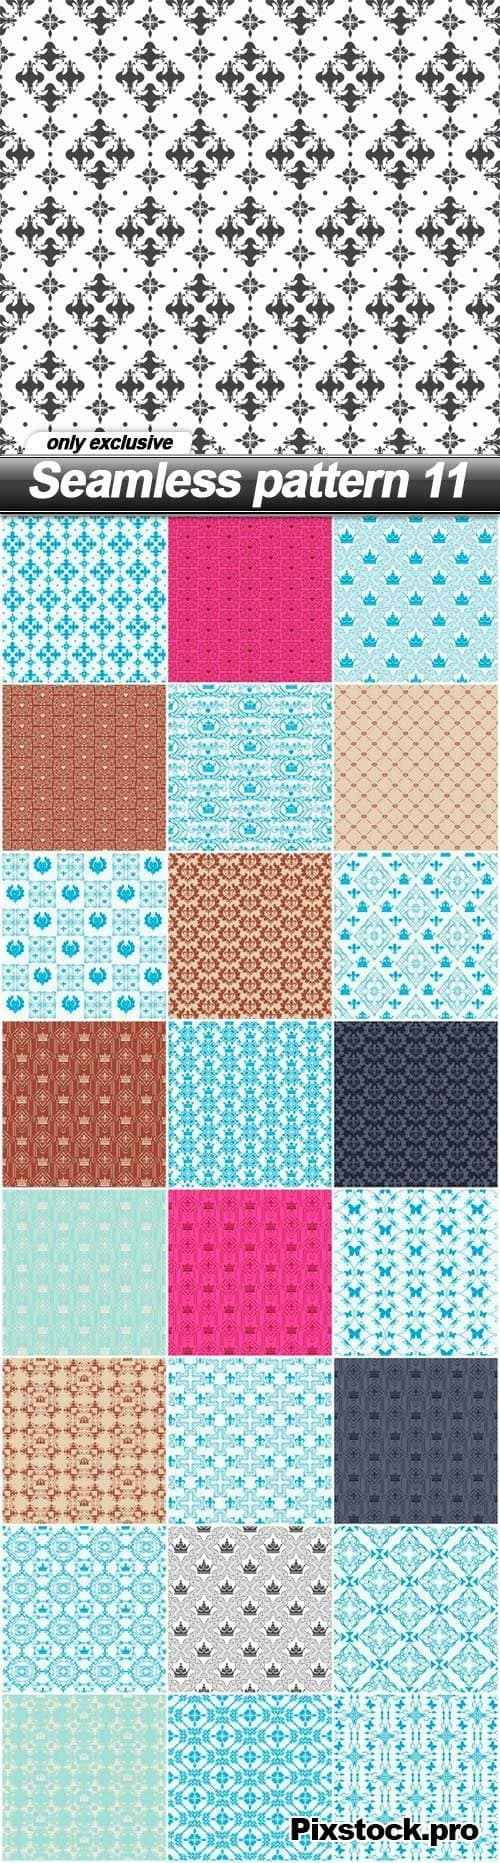 Seamless pattern 11 – 25 EPS